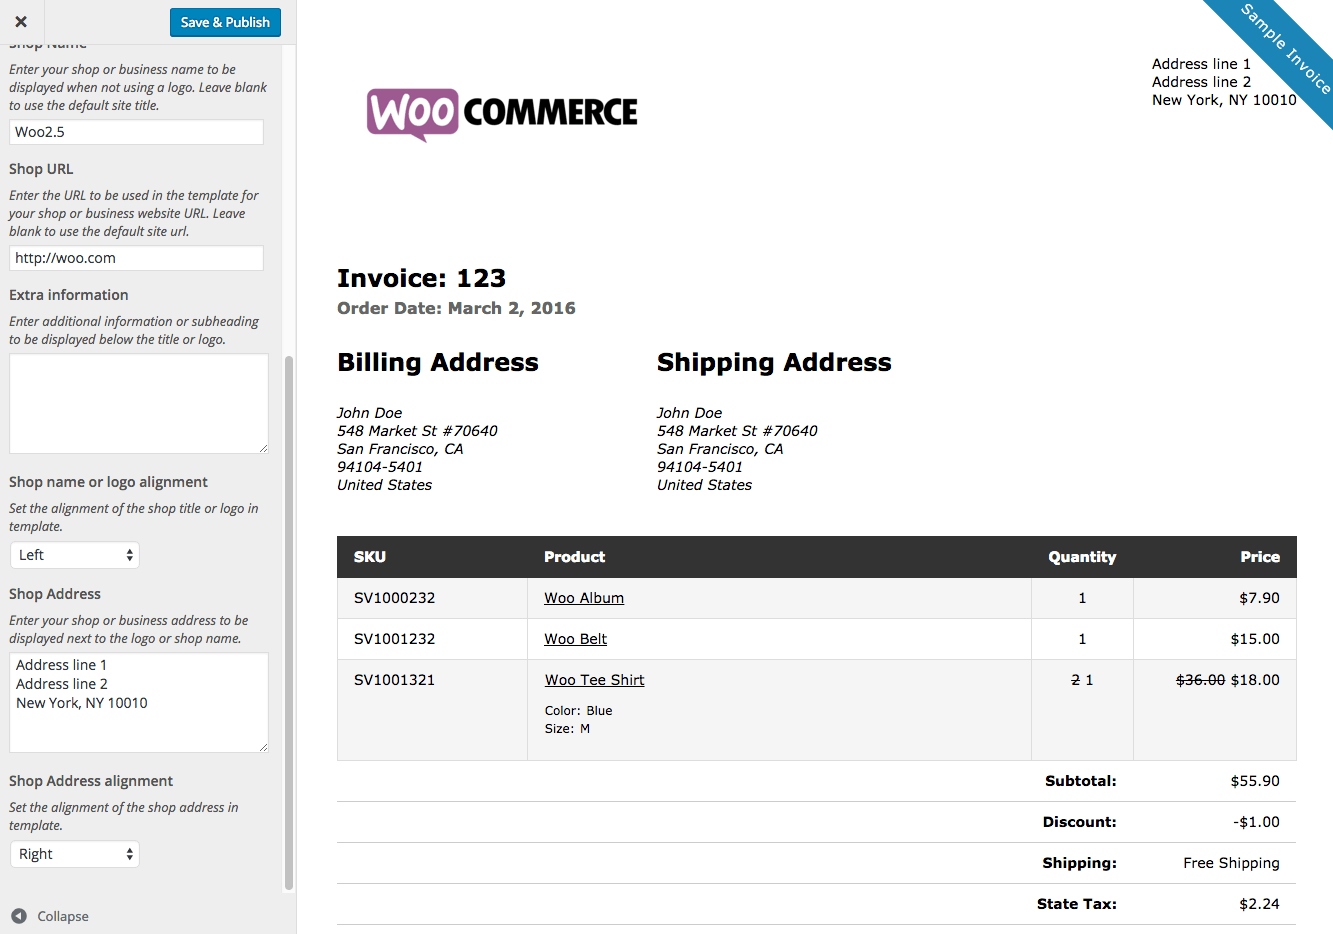 Maidofhonortoastus  Ravishing Print Invoices Amp Packing Lists  Woocommerce With Fair Woocommerce Print Invoices  Packing Lists Customizer With Agreeable Resend Invoice Also Medical Invoice Template Free In Addition Paypal Generate Invoice And Quickbooks Invoice Payment As Well As Vat On Proforma Invoices Additionally Oracle Invoice Approval Workflow From Woocommercecom With Maidofhonortoastus  Fair Print Invoices Amp Packing Lists  Woocommerce With Agreeable Woocommerce Print Invoices  Packing Lists Customizer And Ravishing Resend Invoice Also Medical Invoice Template Free In Addition Paypal Generate Invoice From Woocommercecom